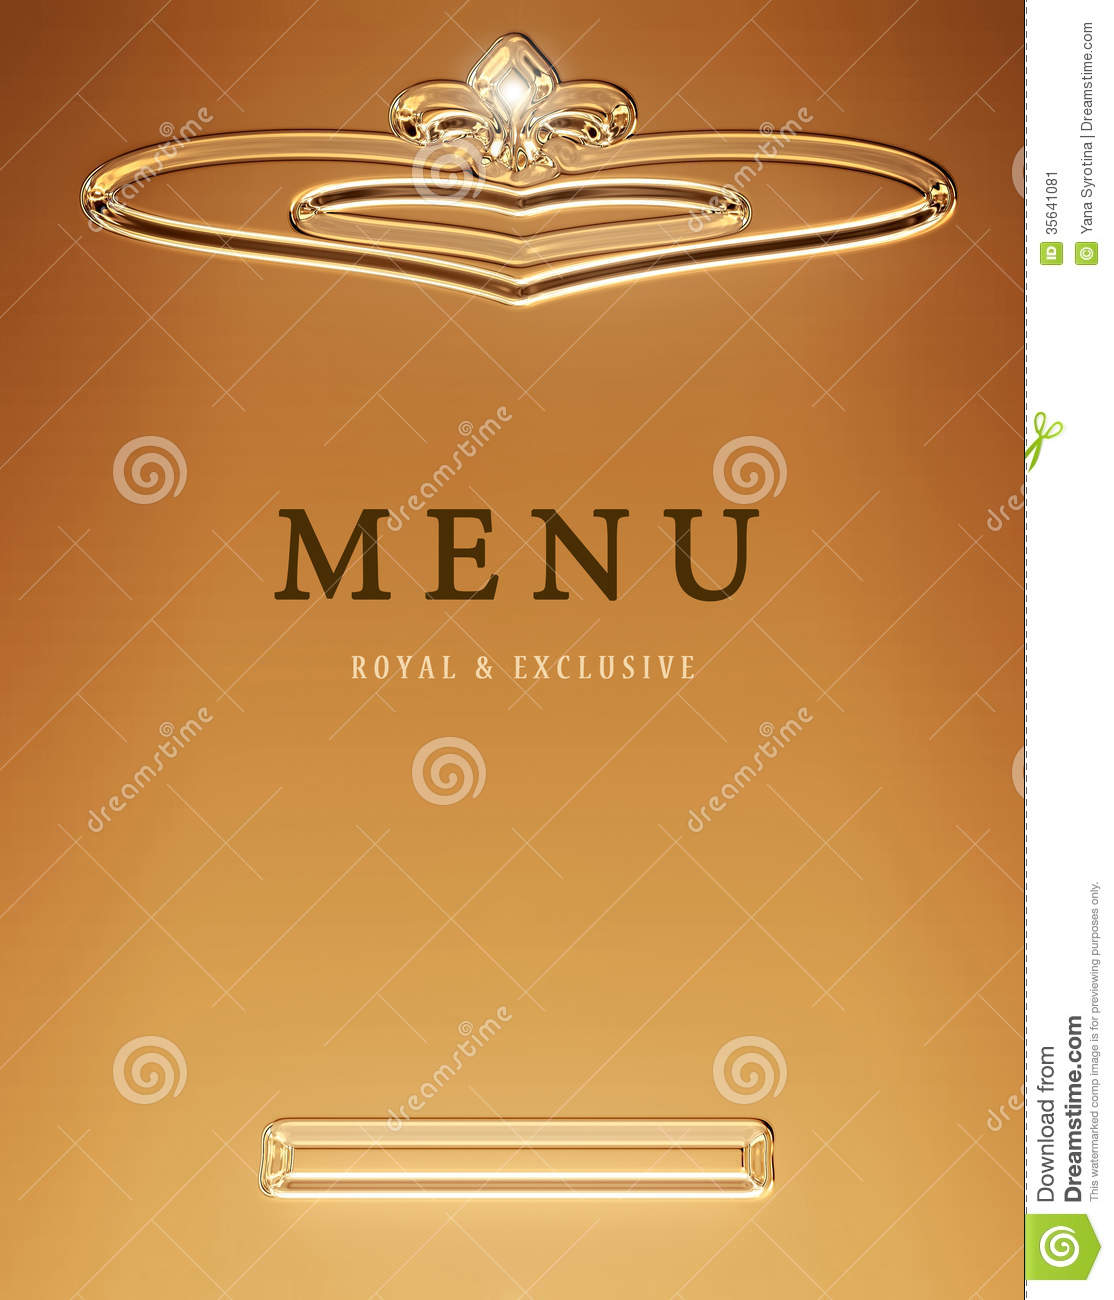 Menu icon stock image